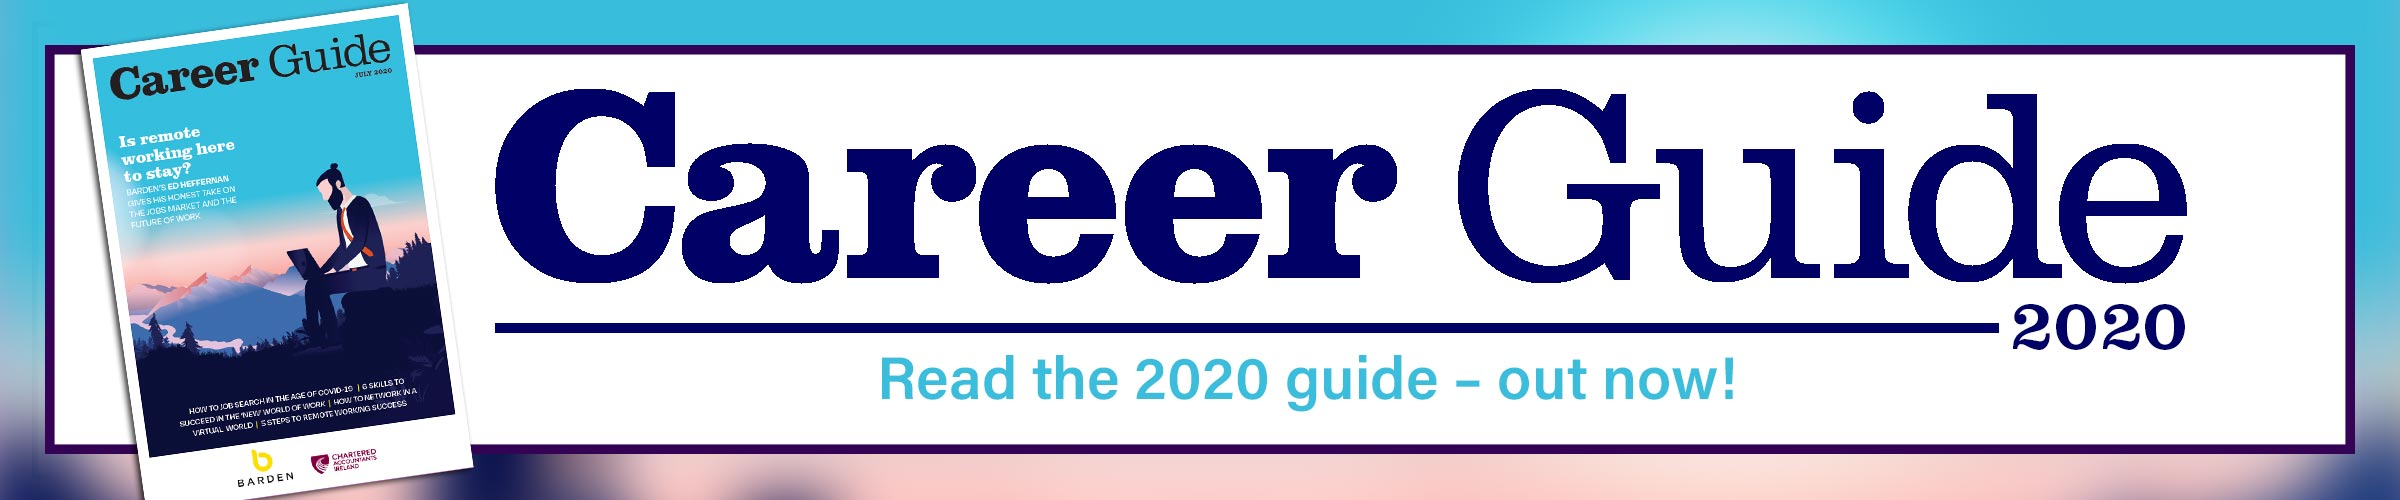 career-guide-2020-banner